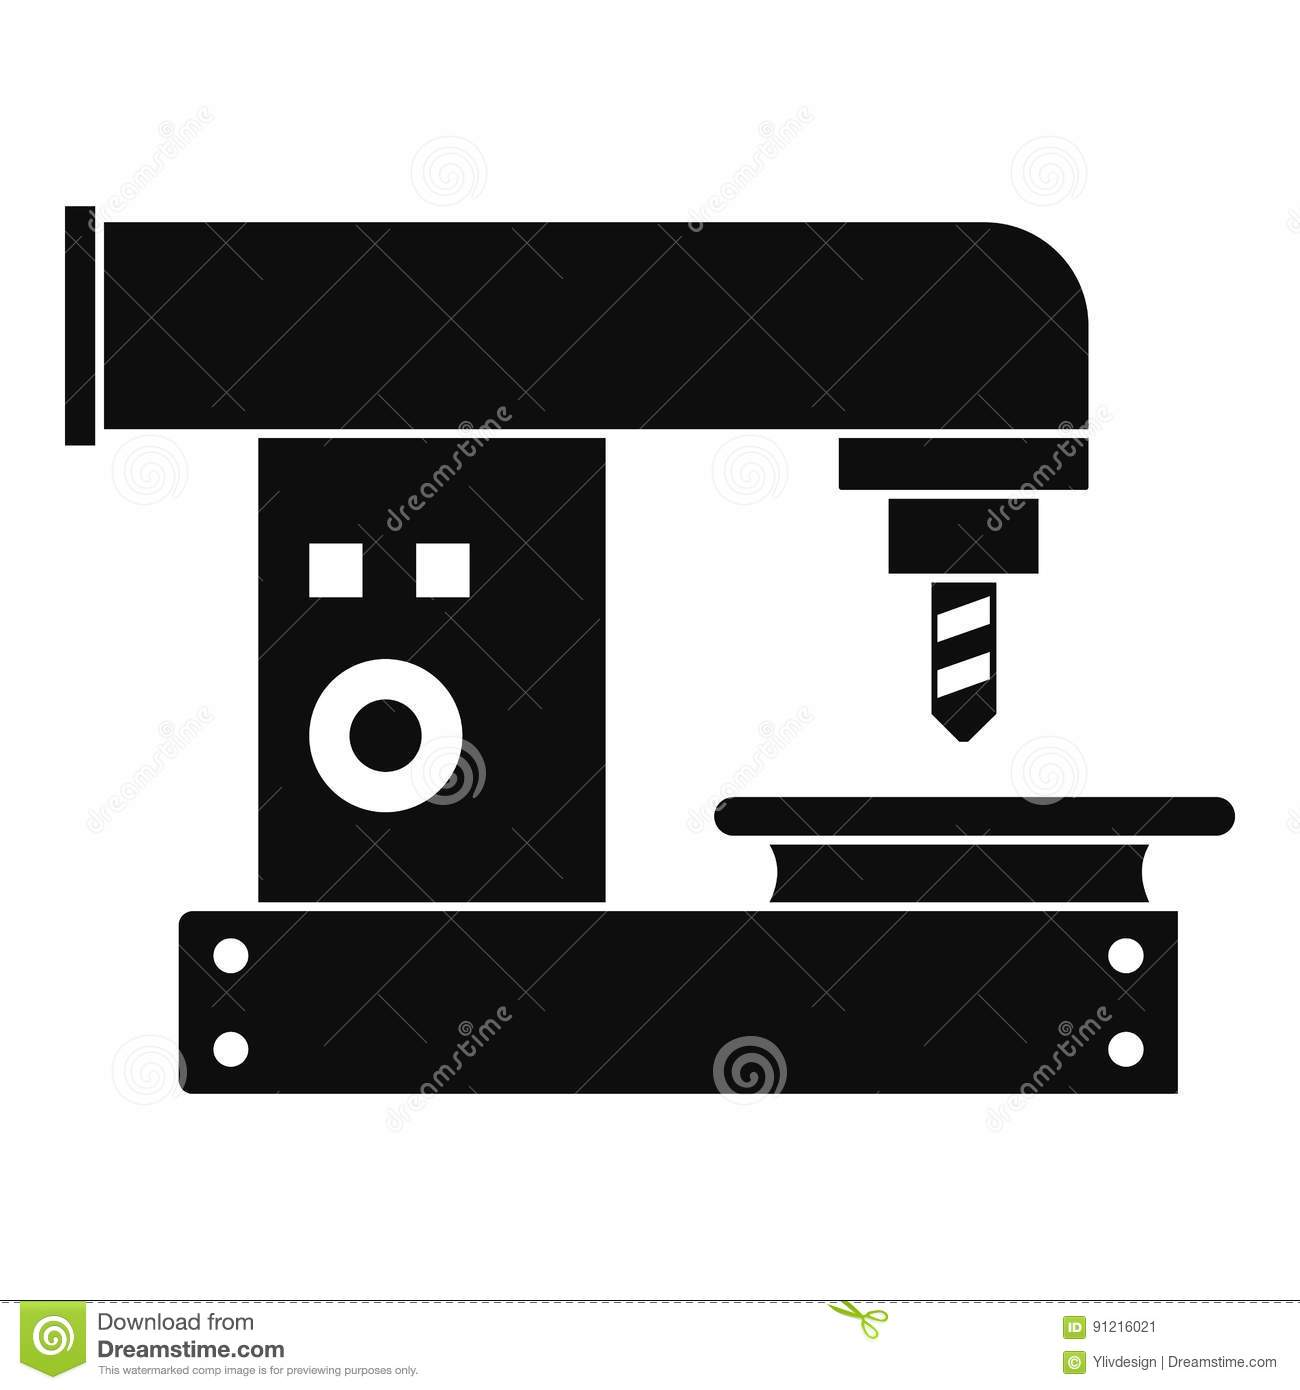 drilling machine icon simple style stock vector